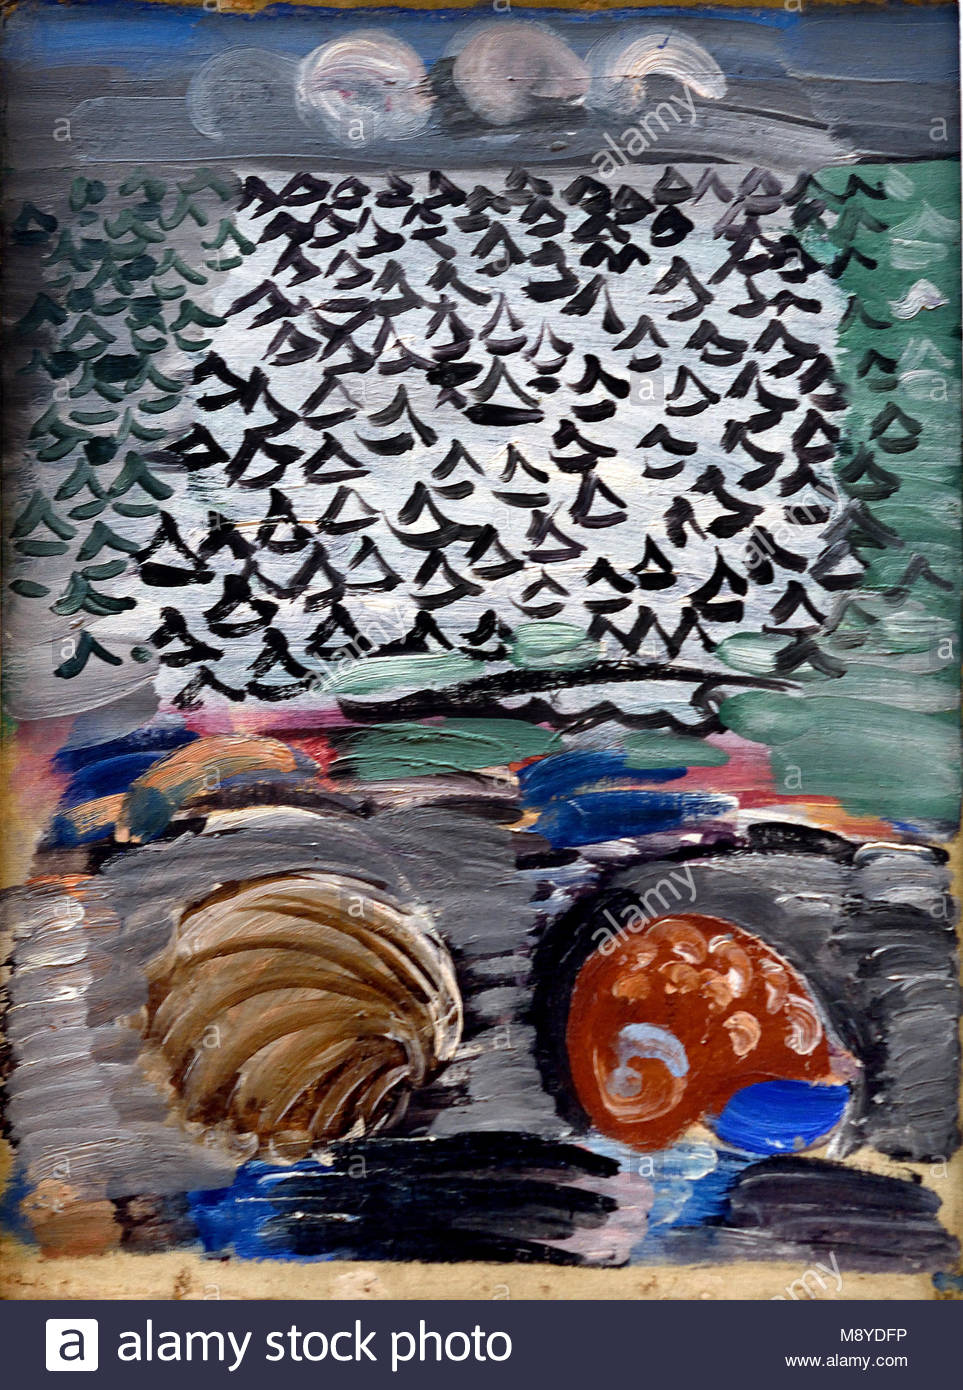 Coquillages au bord de la mer - Seashells at the seaside 1925 Raoul Dufy Painter France French - Stock Image